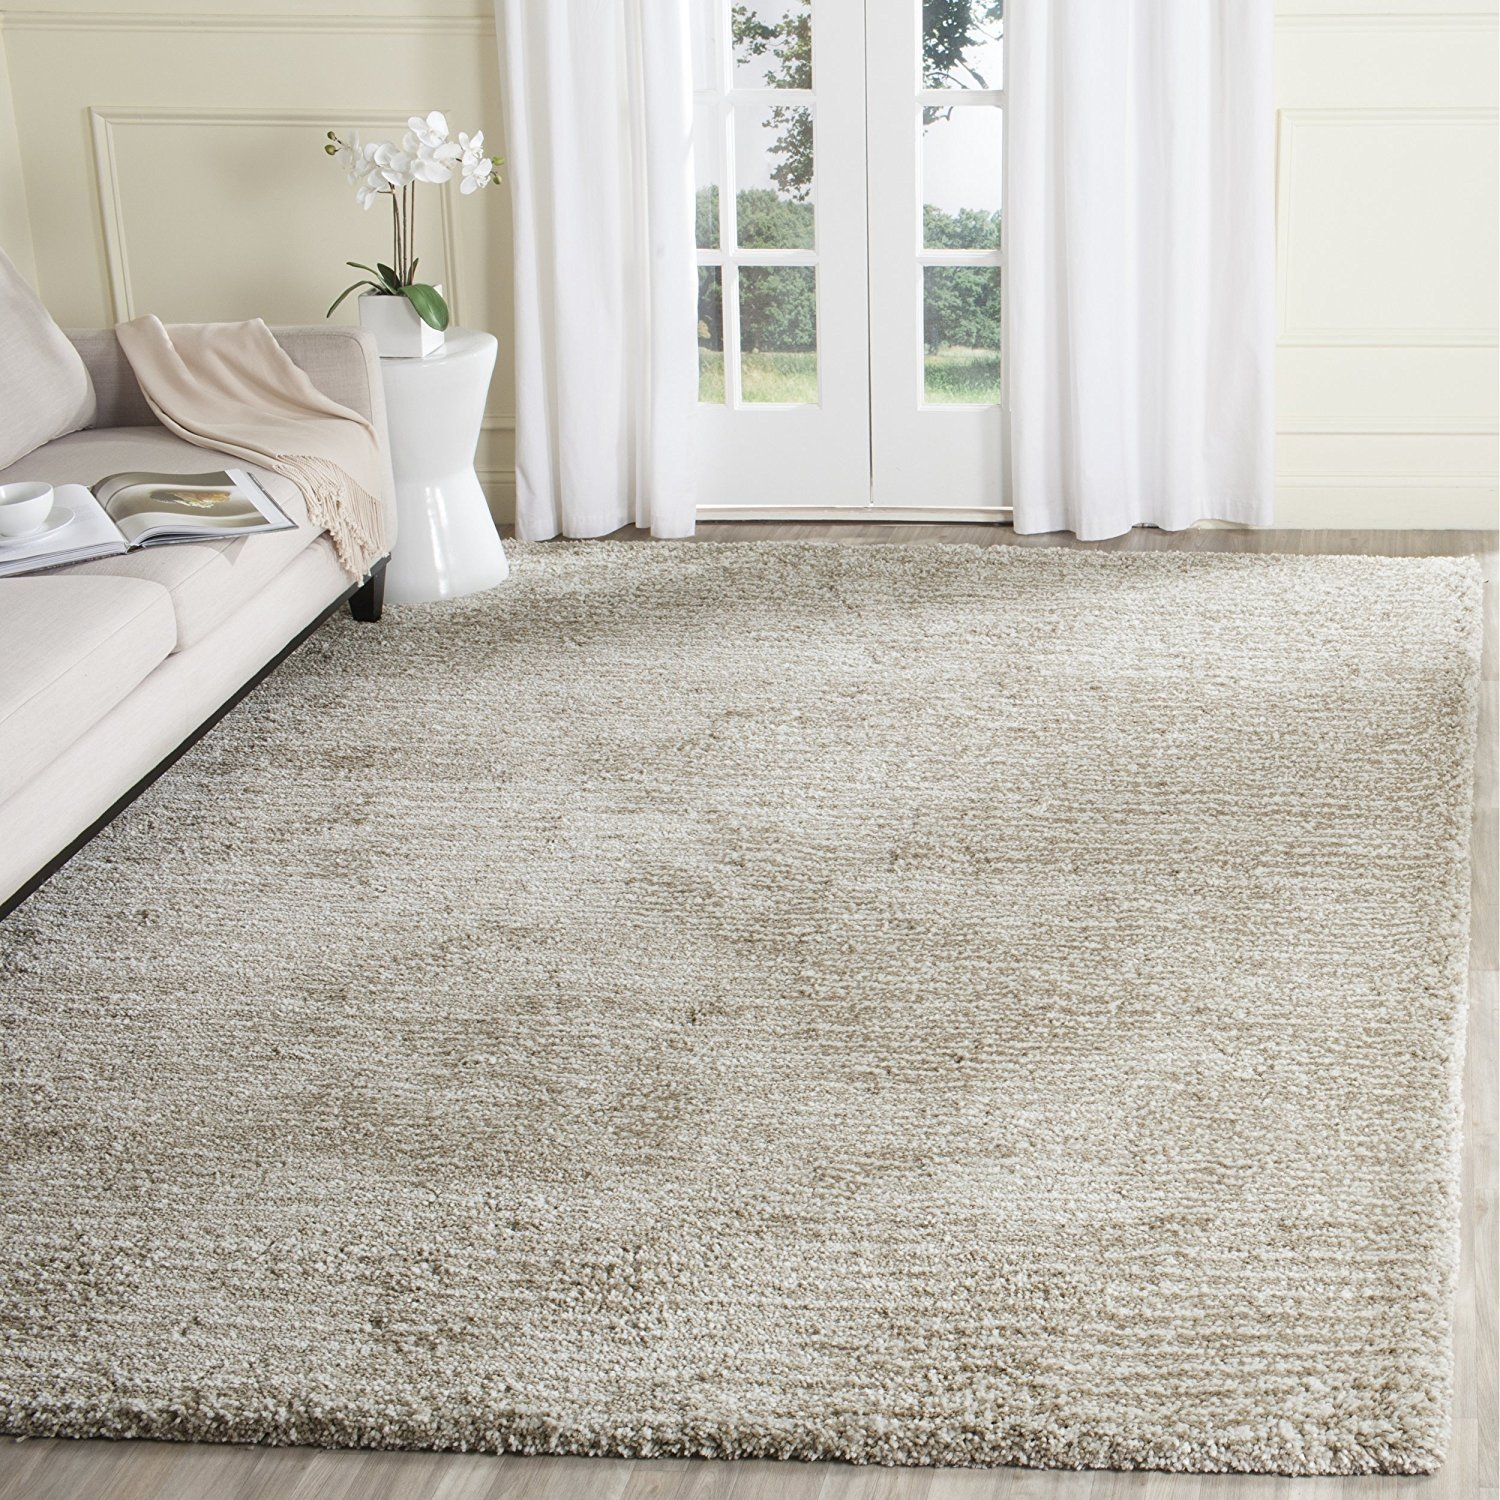 Safavieh Ultimate Shag Collection Sgu211 C Handmade Sand And Ivory Polyester Area Rug, 8 Feet By 10 Feet (8' X 10') by Safavieh